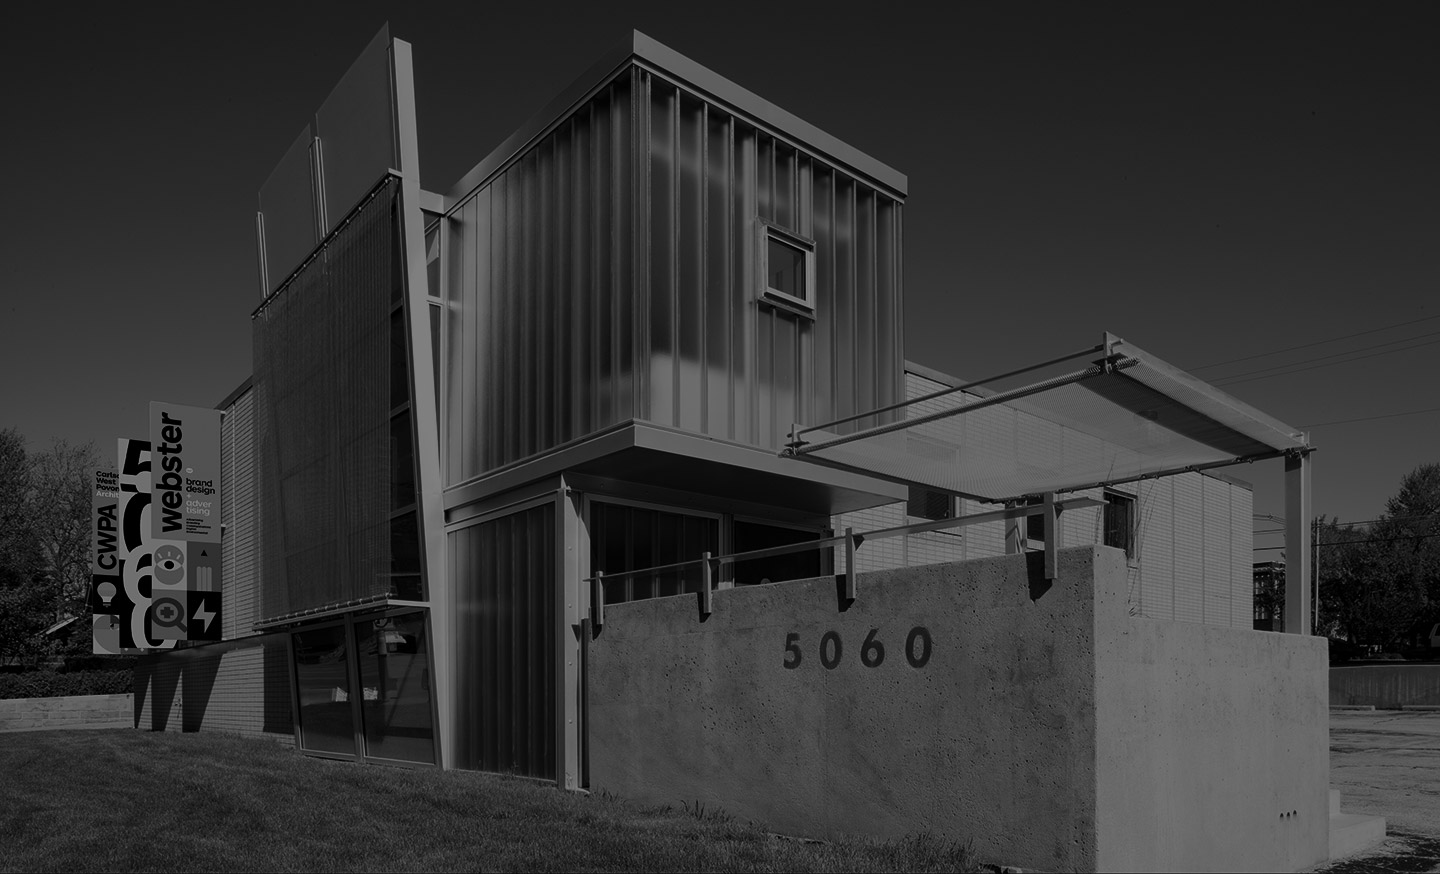 A photograph of the Webster offices at 5060 Dodge St in Omaha